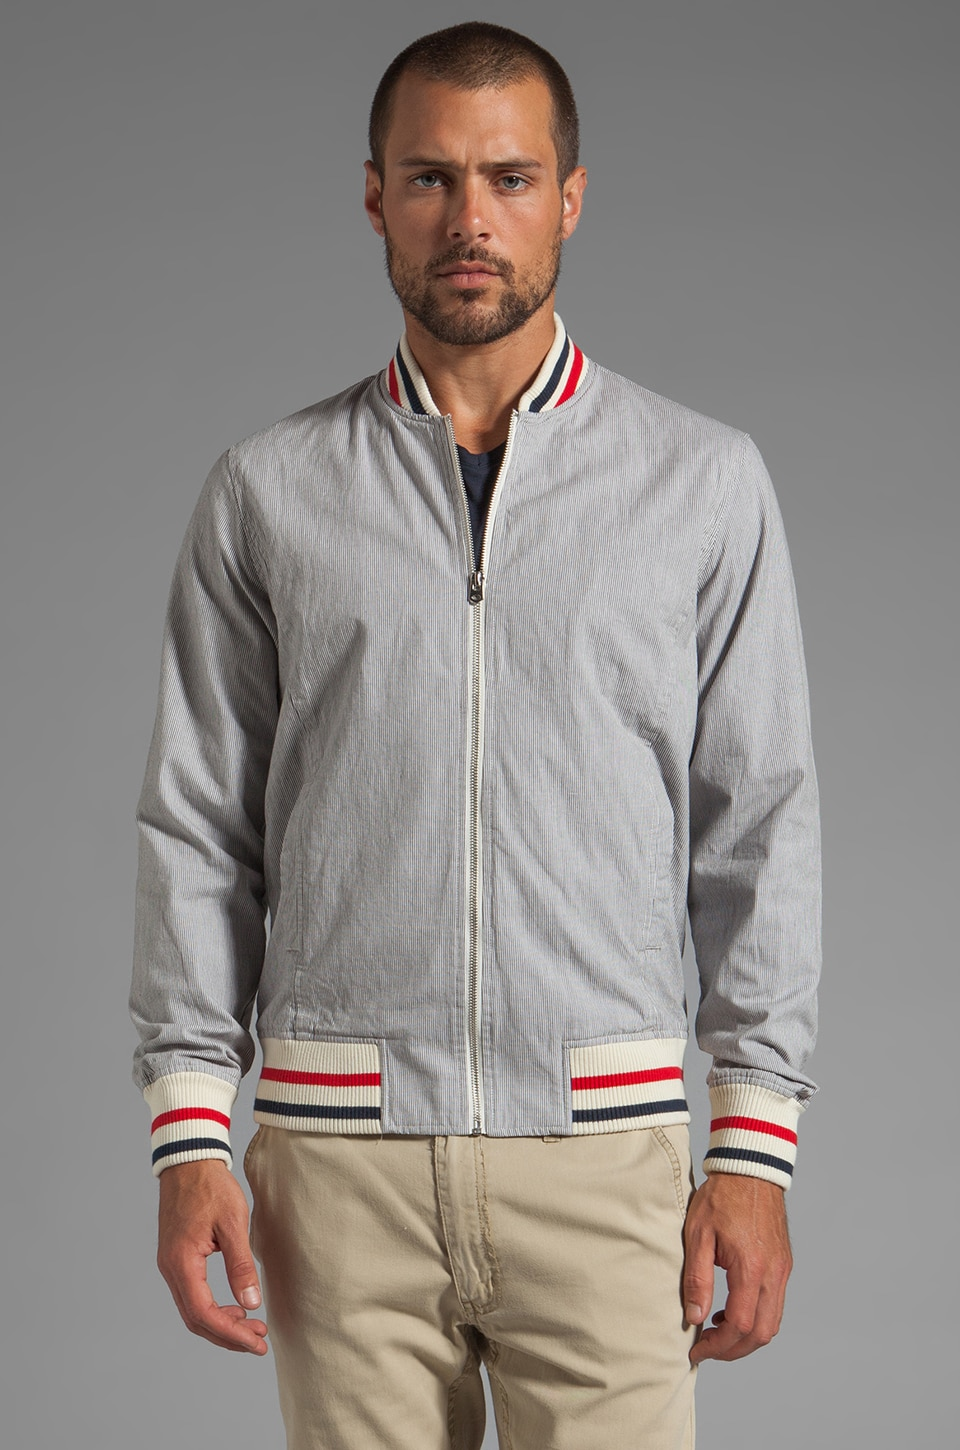 Shades of Grey by Micah Cohen Varsity Jacket in Grey Stripe Corded Cotton